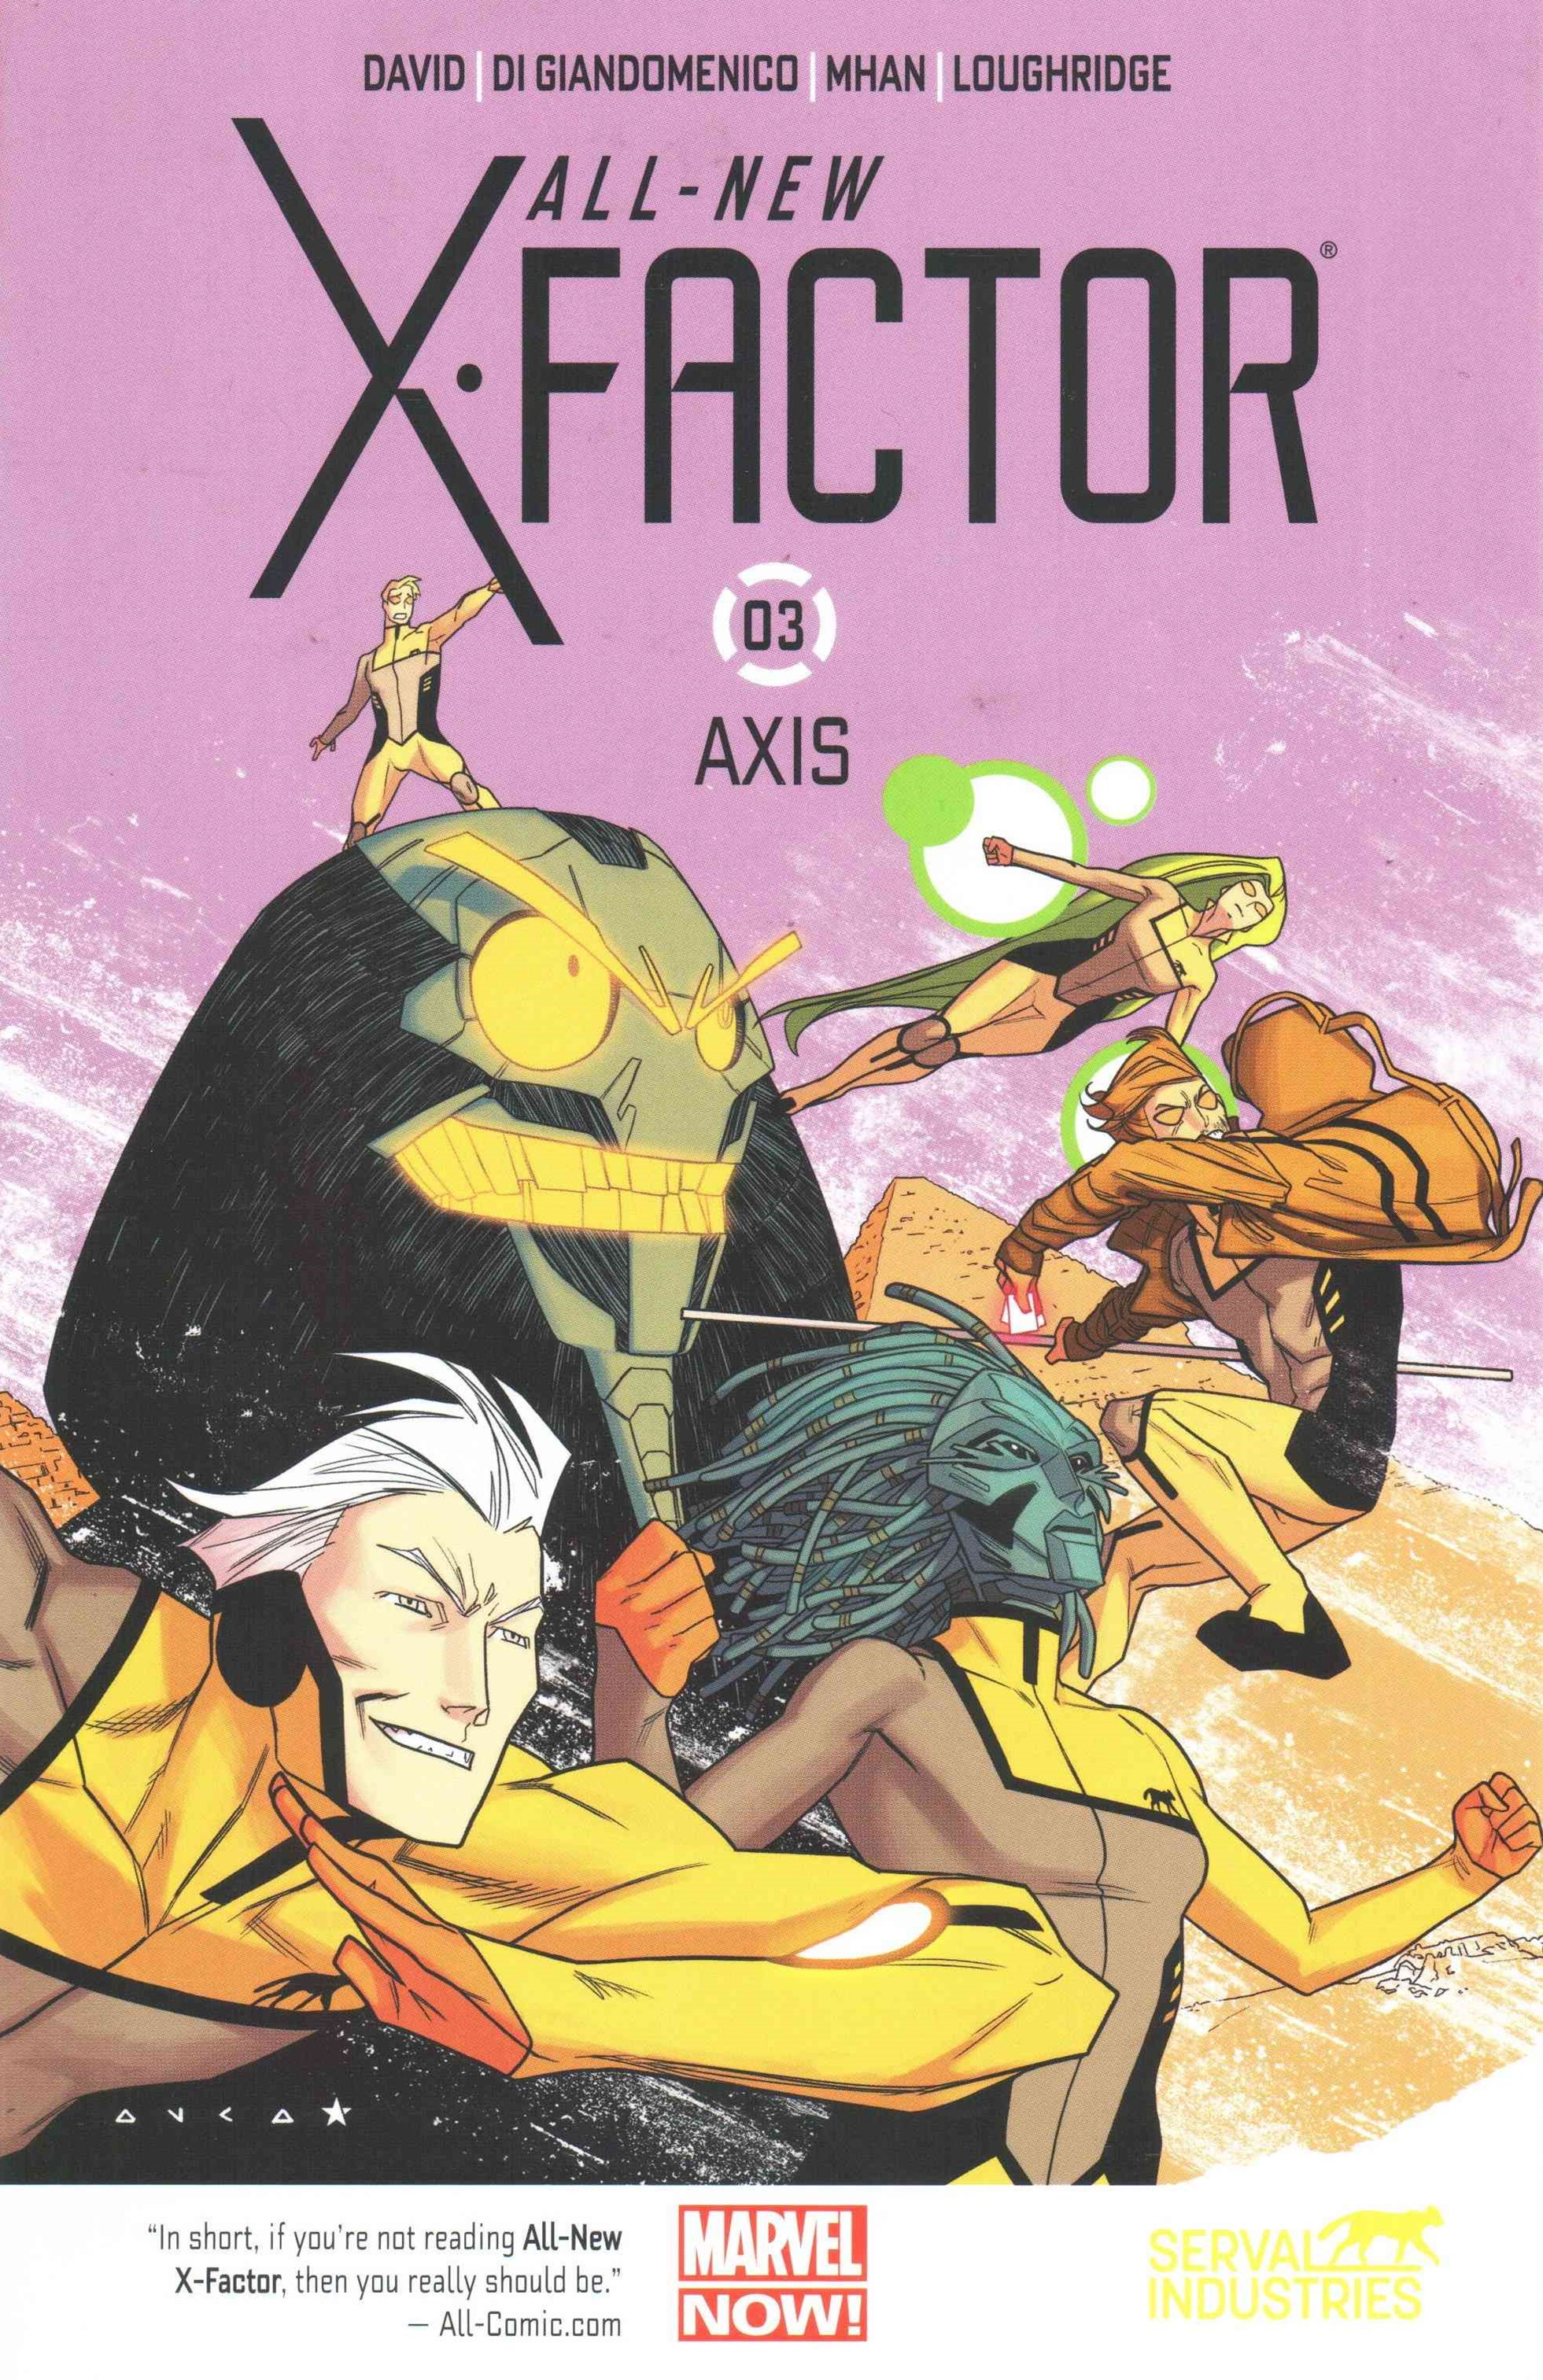 All-New X-Factor Volume 3